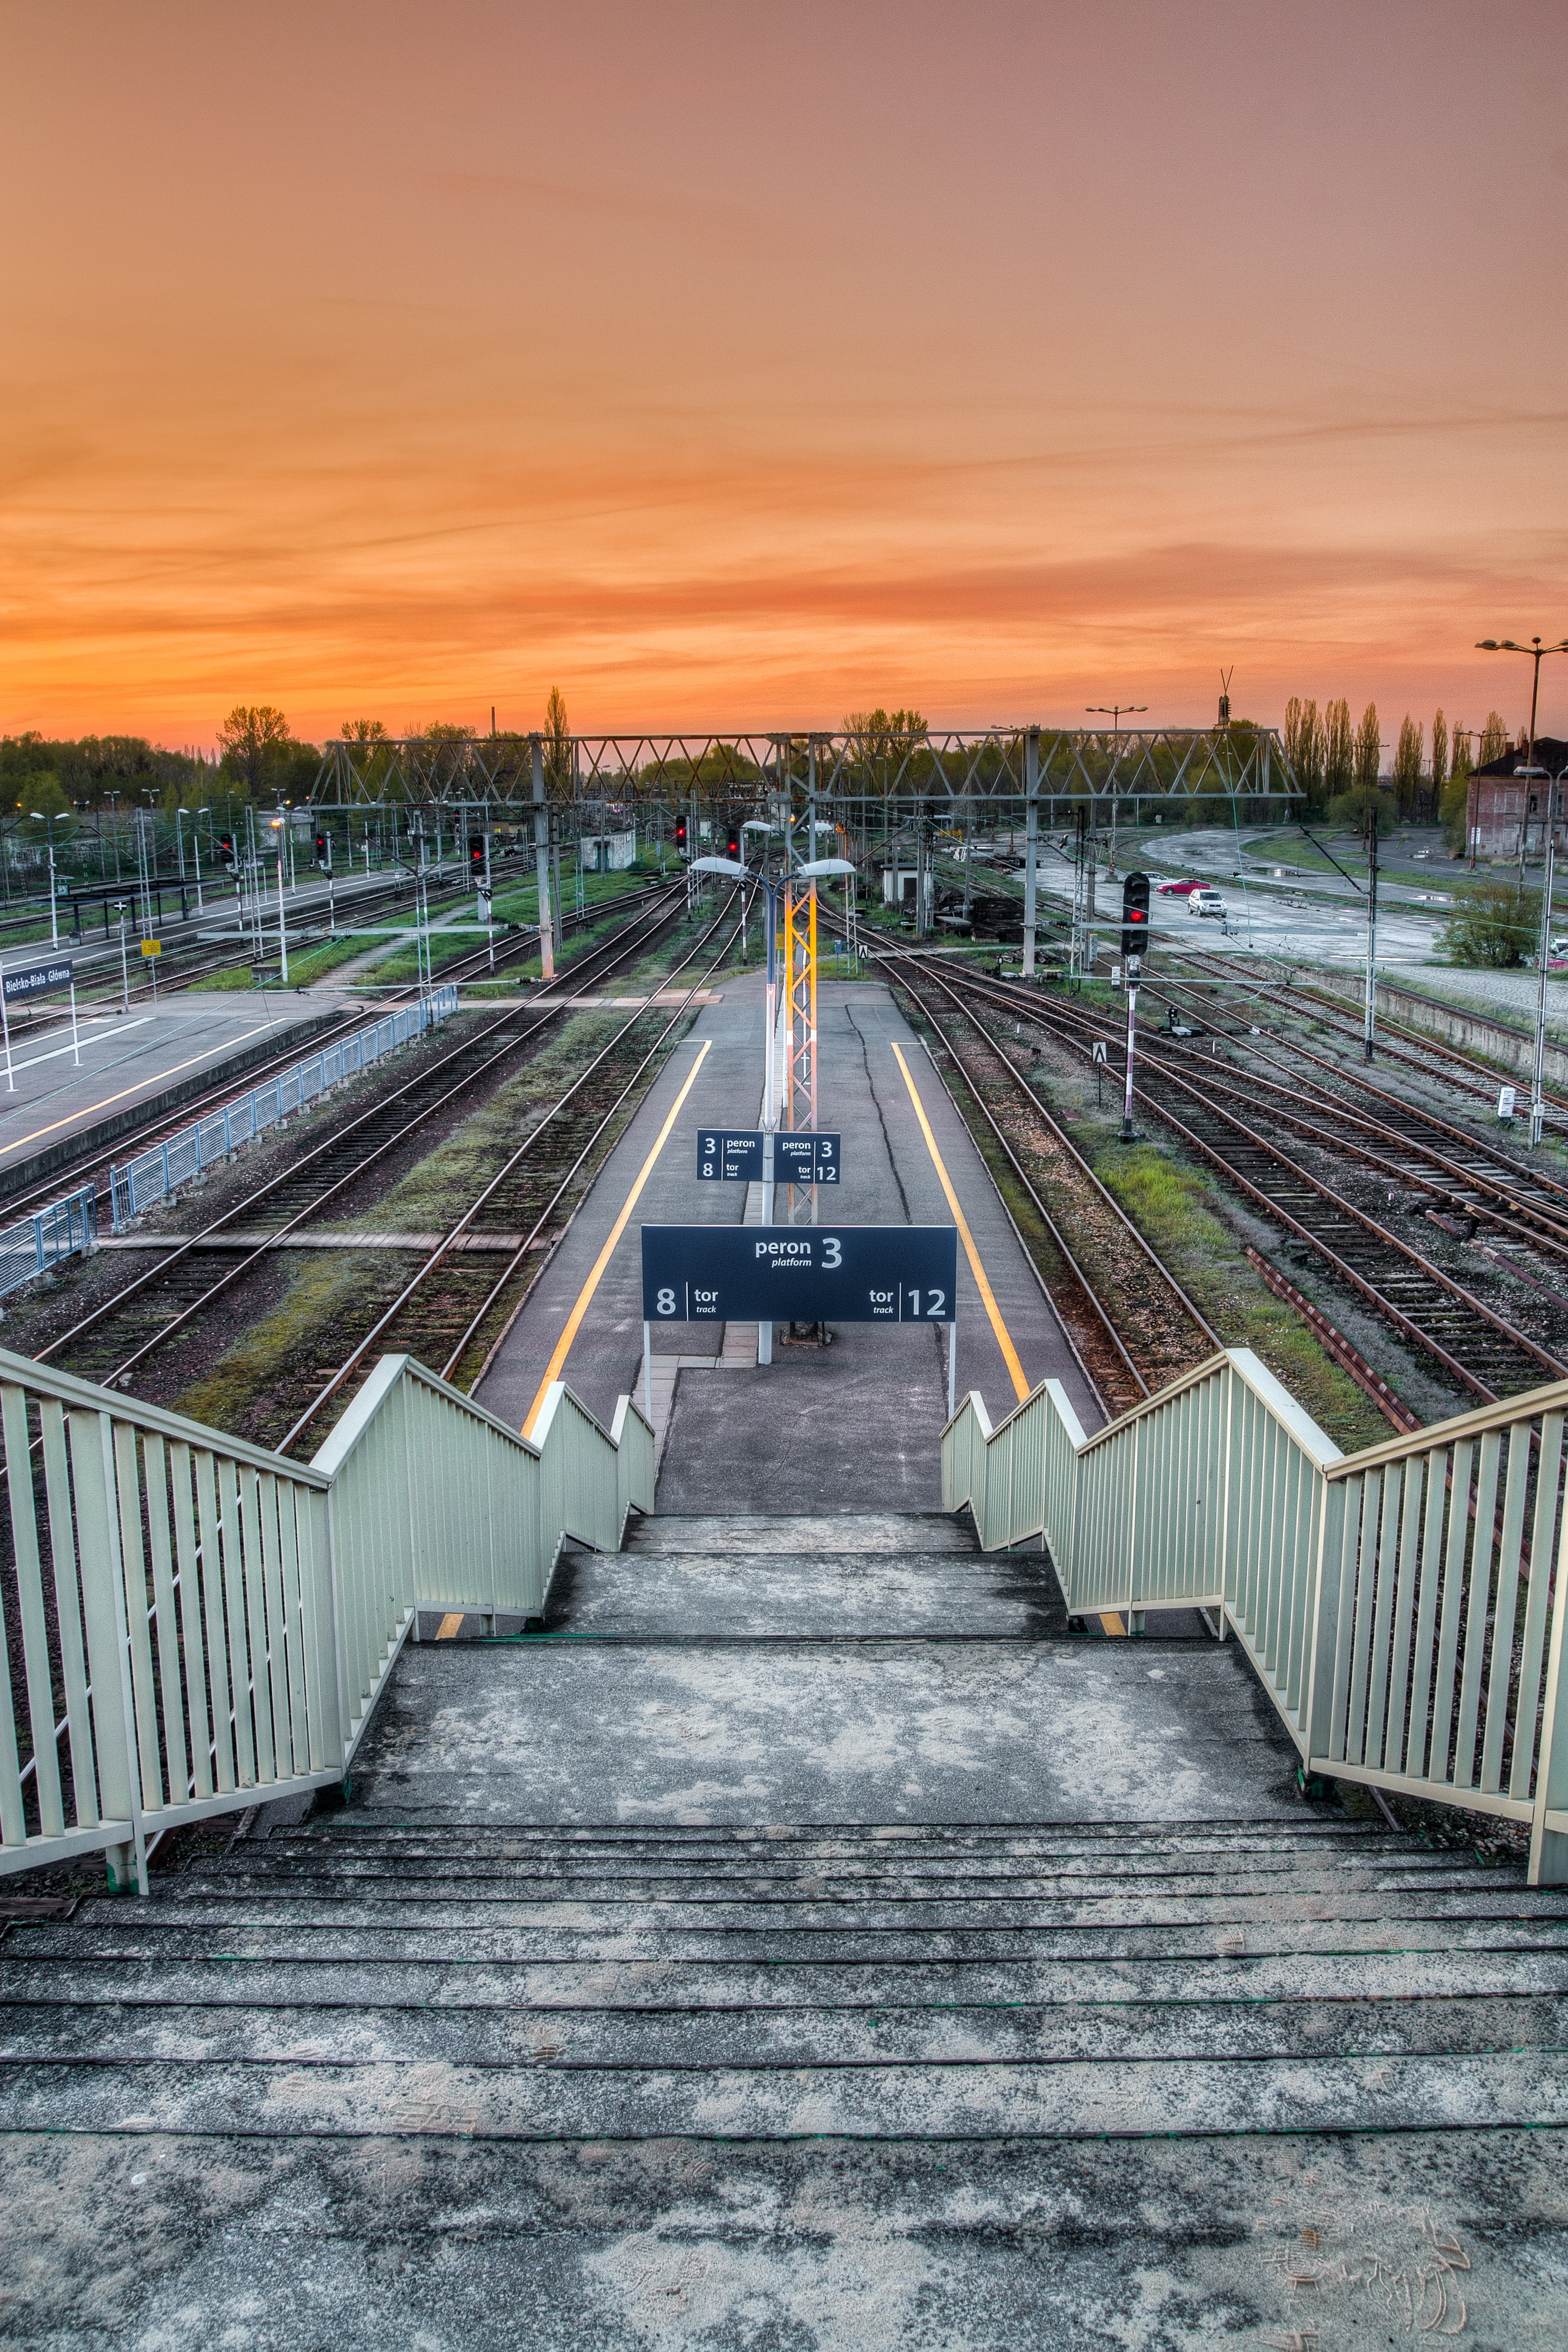 Looking down a staircase from a railway platform during the sunset